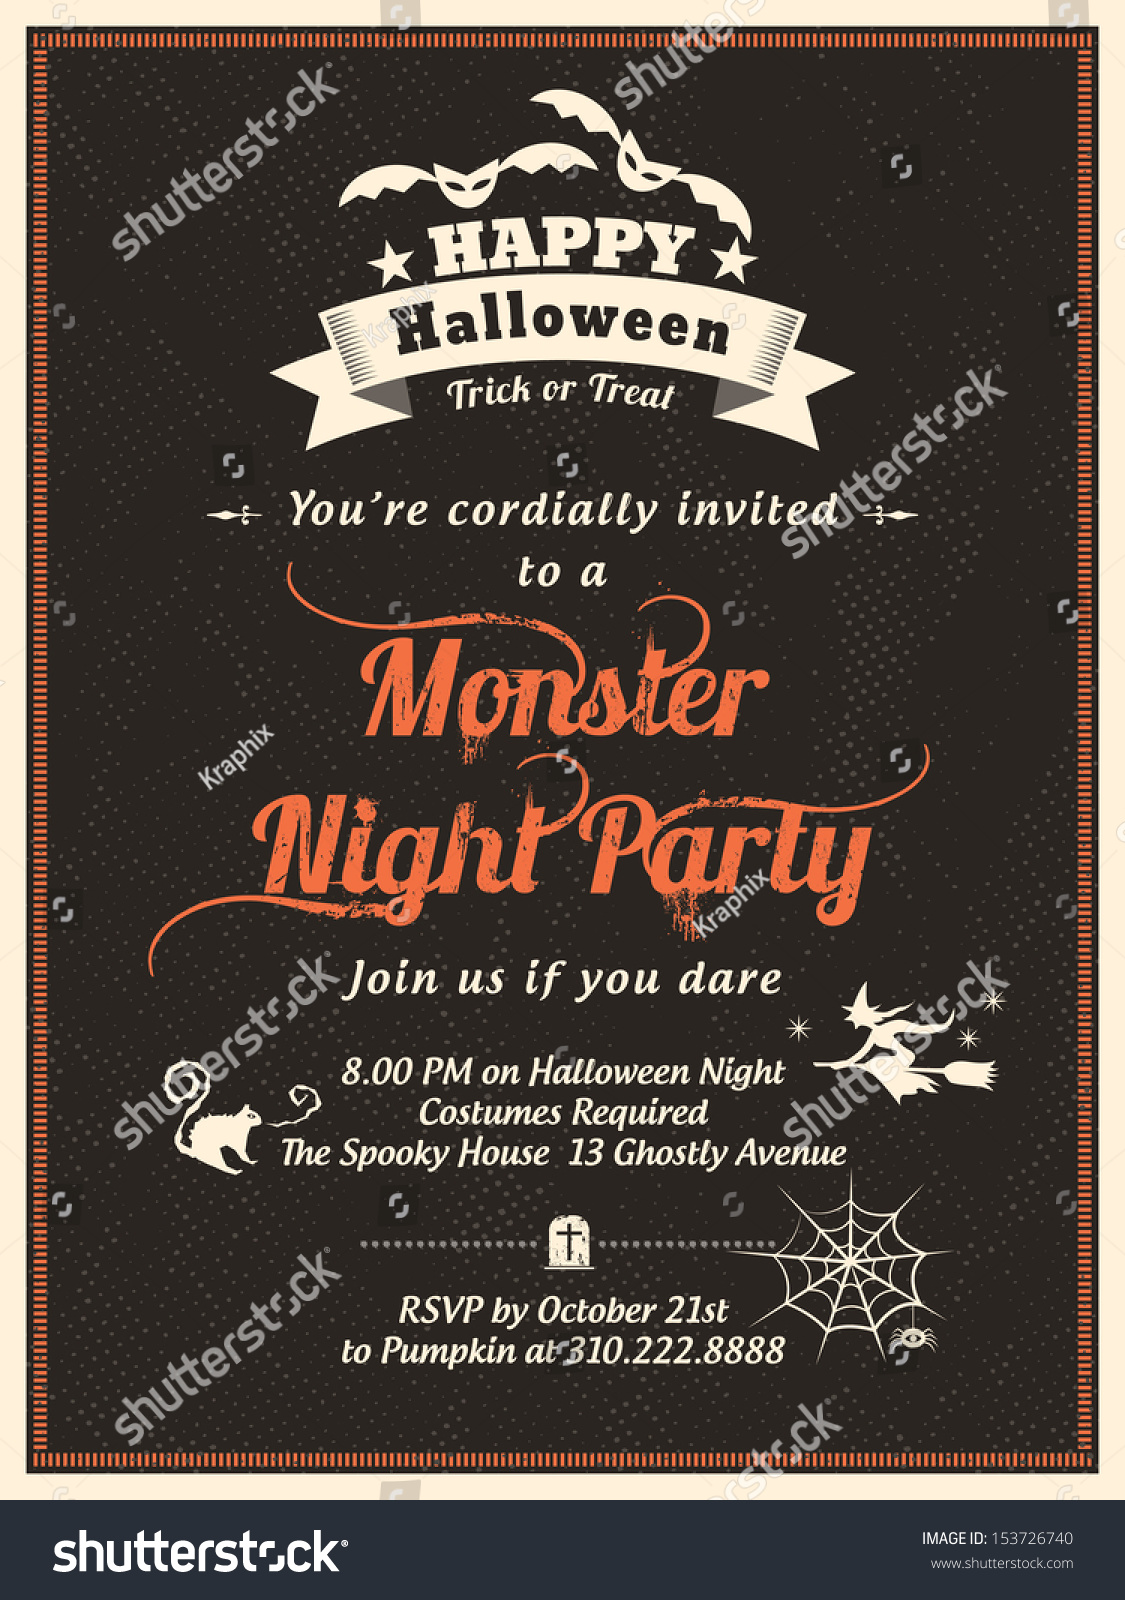 halloween party invitation template cardposterflyer stock vector halloween party invitation template for card poster flyer